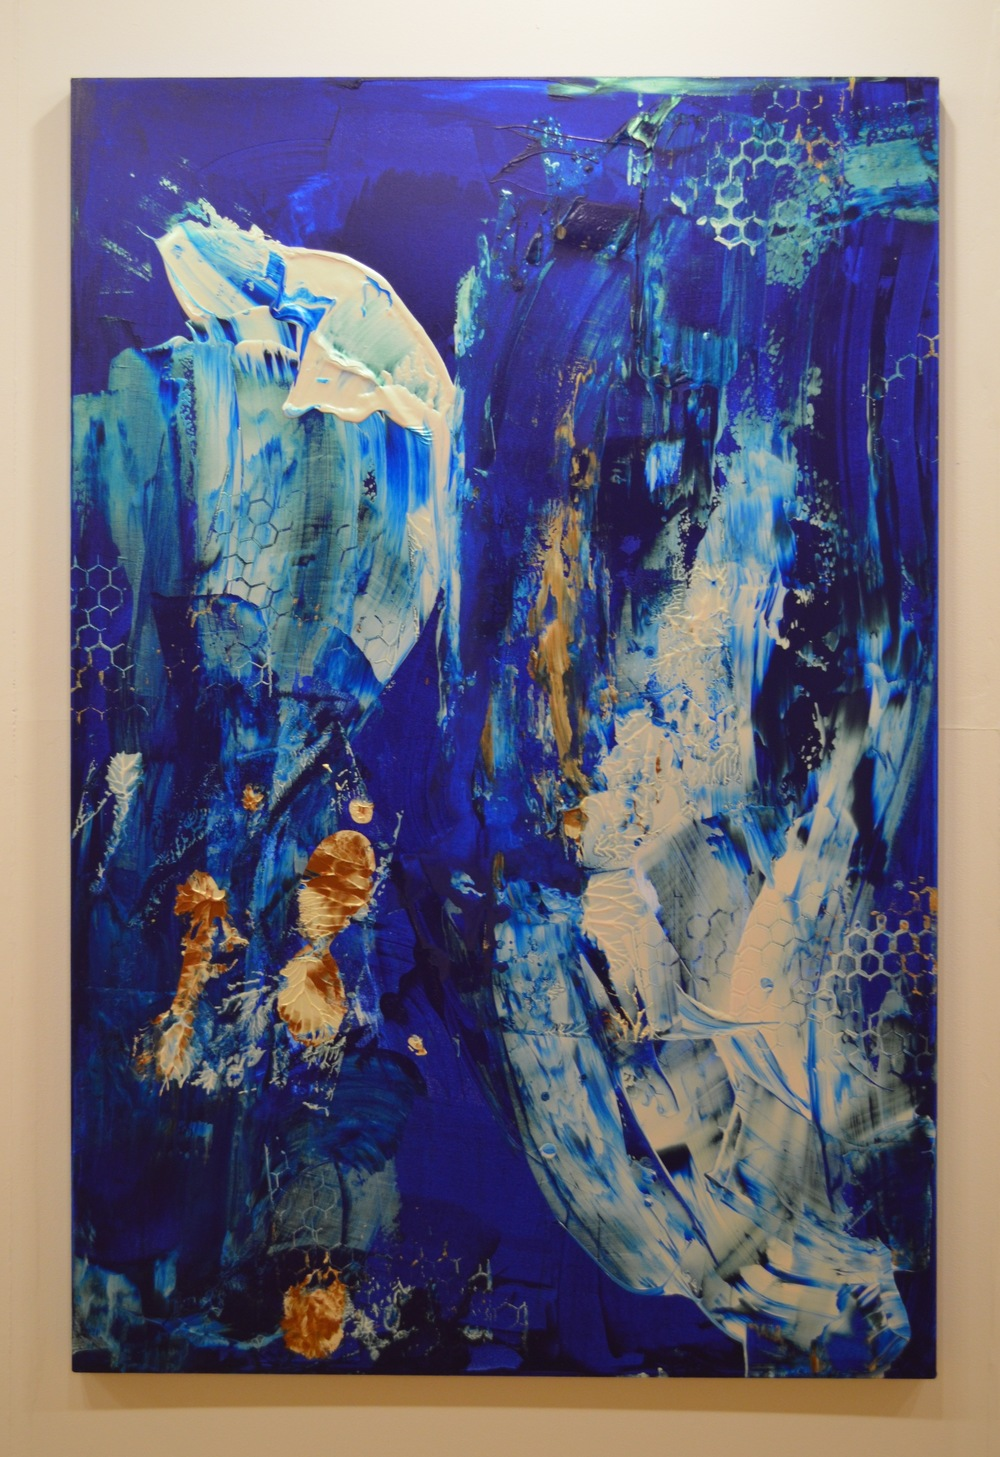 9. Deep Dive, Natasha Shoro, 72 x 48 inches, $6,500